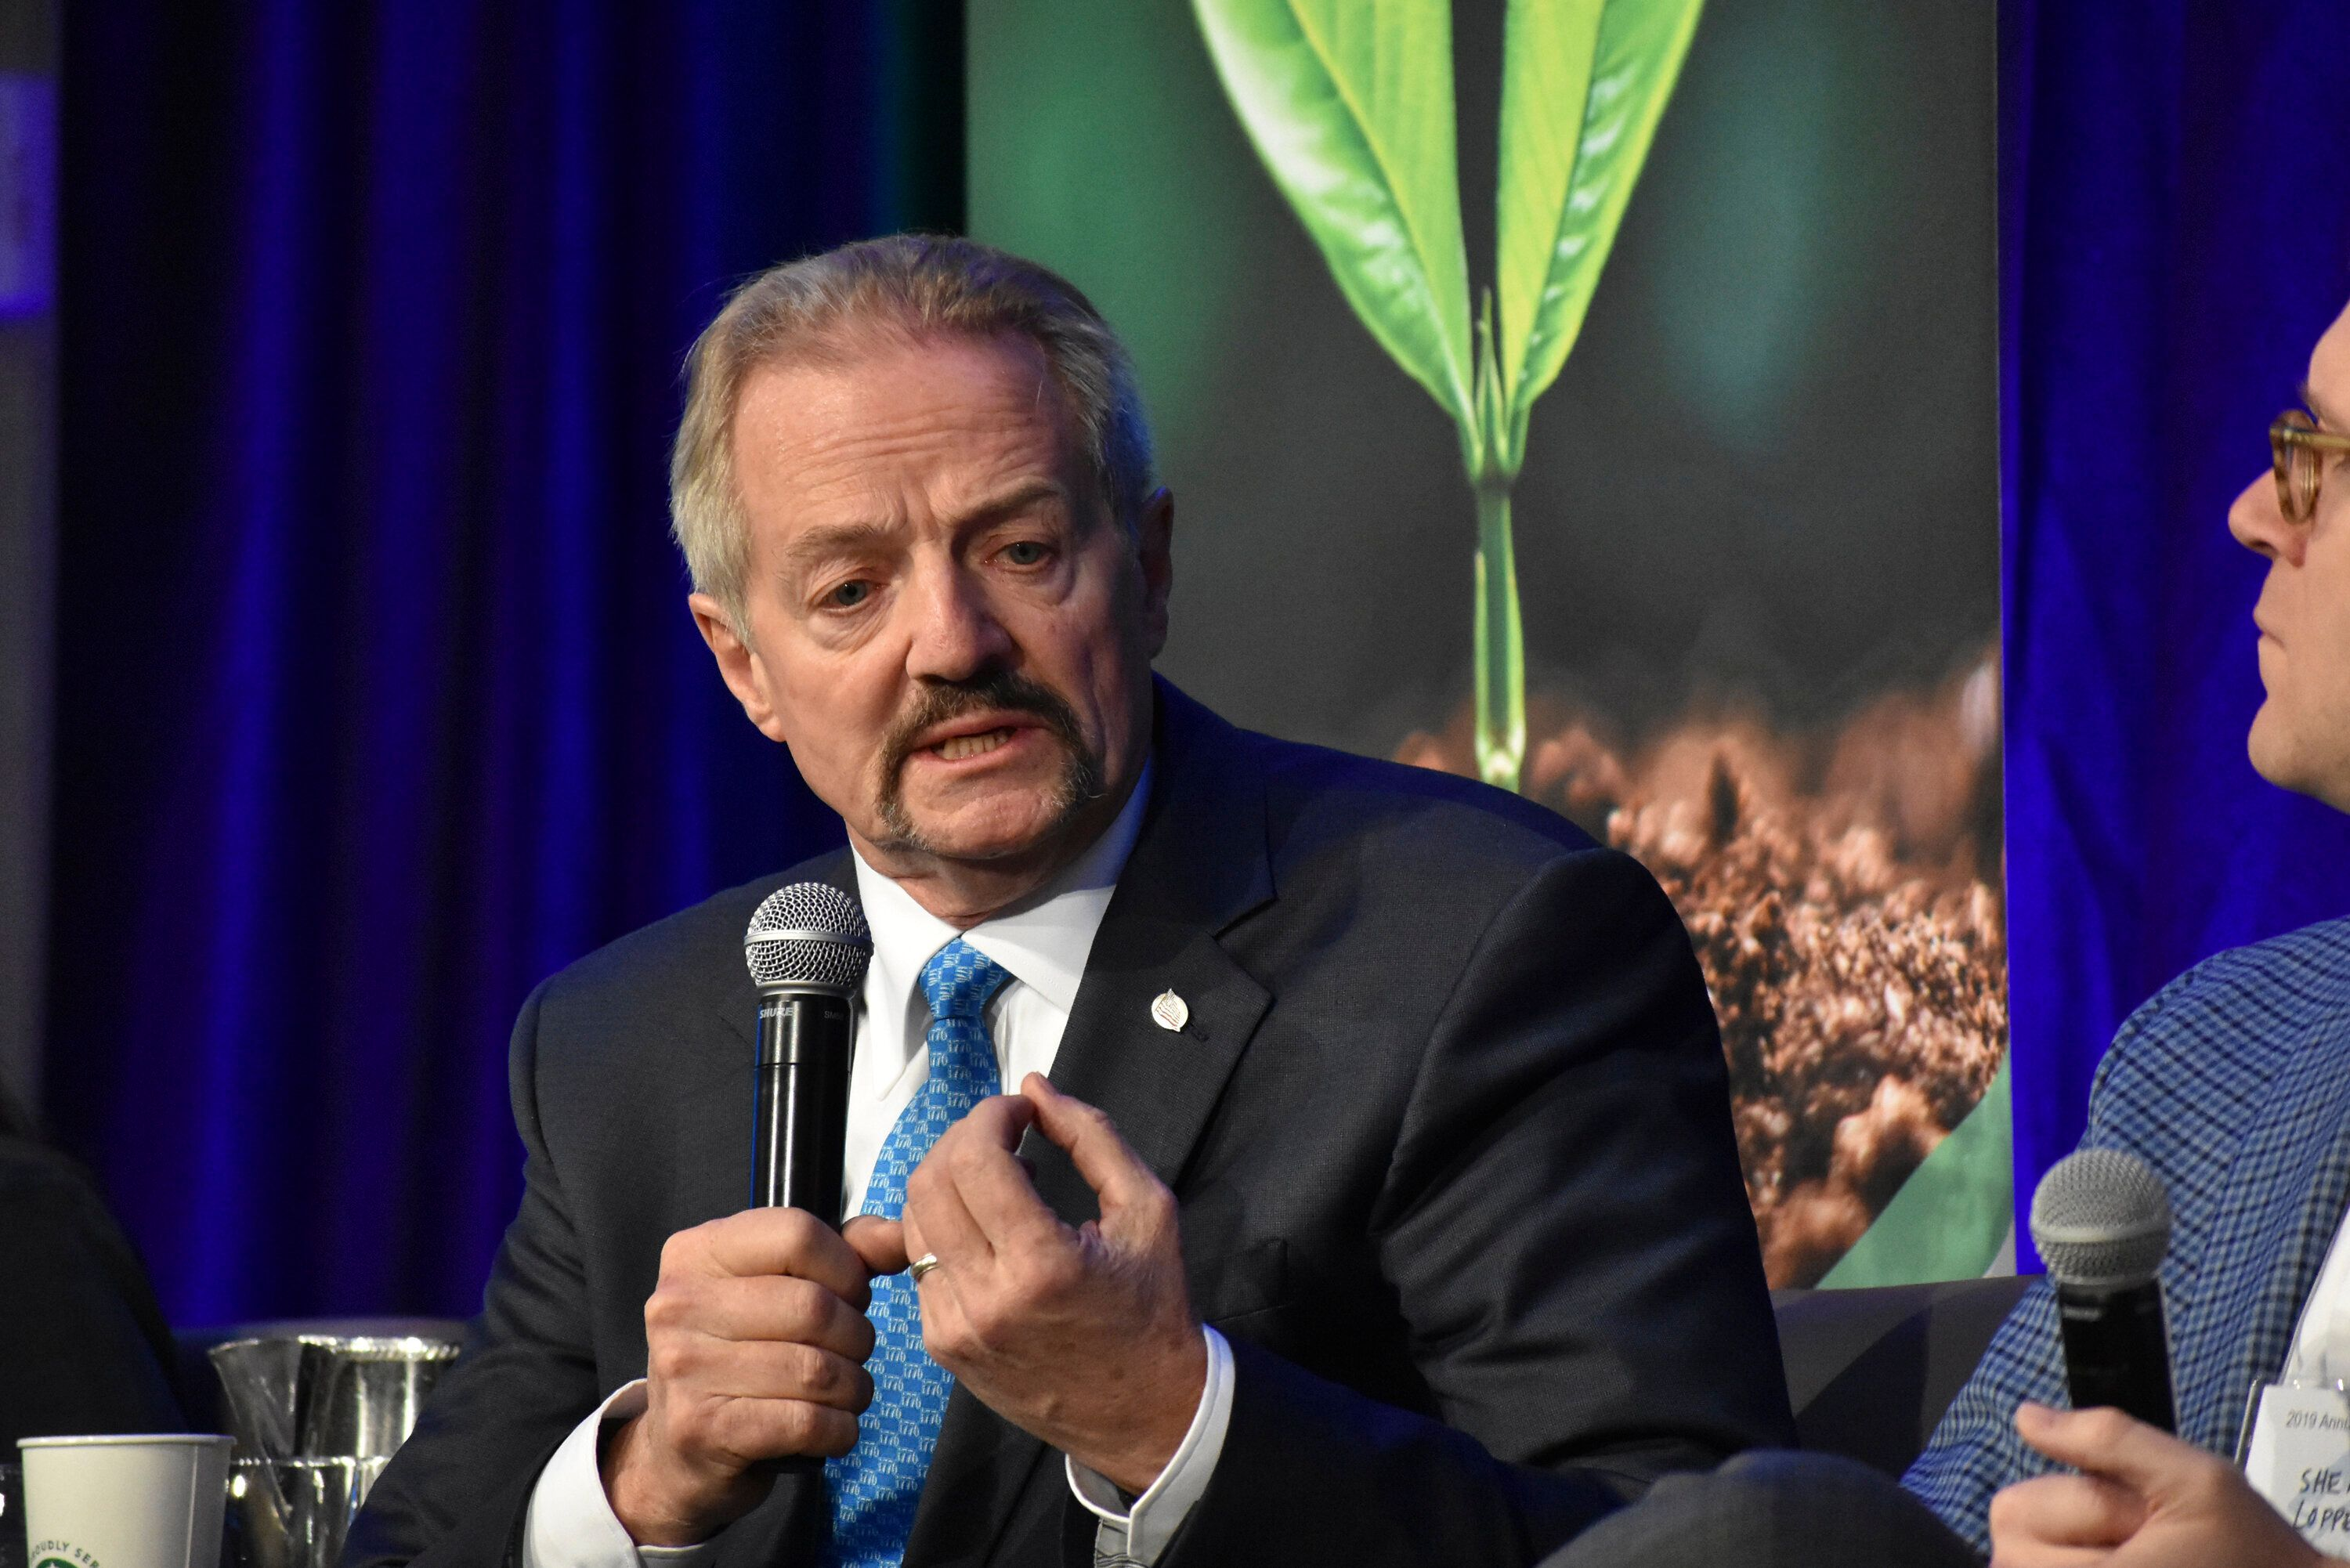 U.S. Bureau of Land Management Acting Director William Perry Pendley speaks at a conference in Fort Collins, Colorado, on Oct